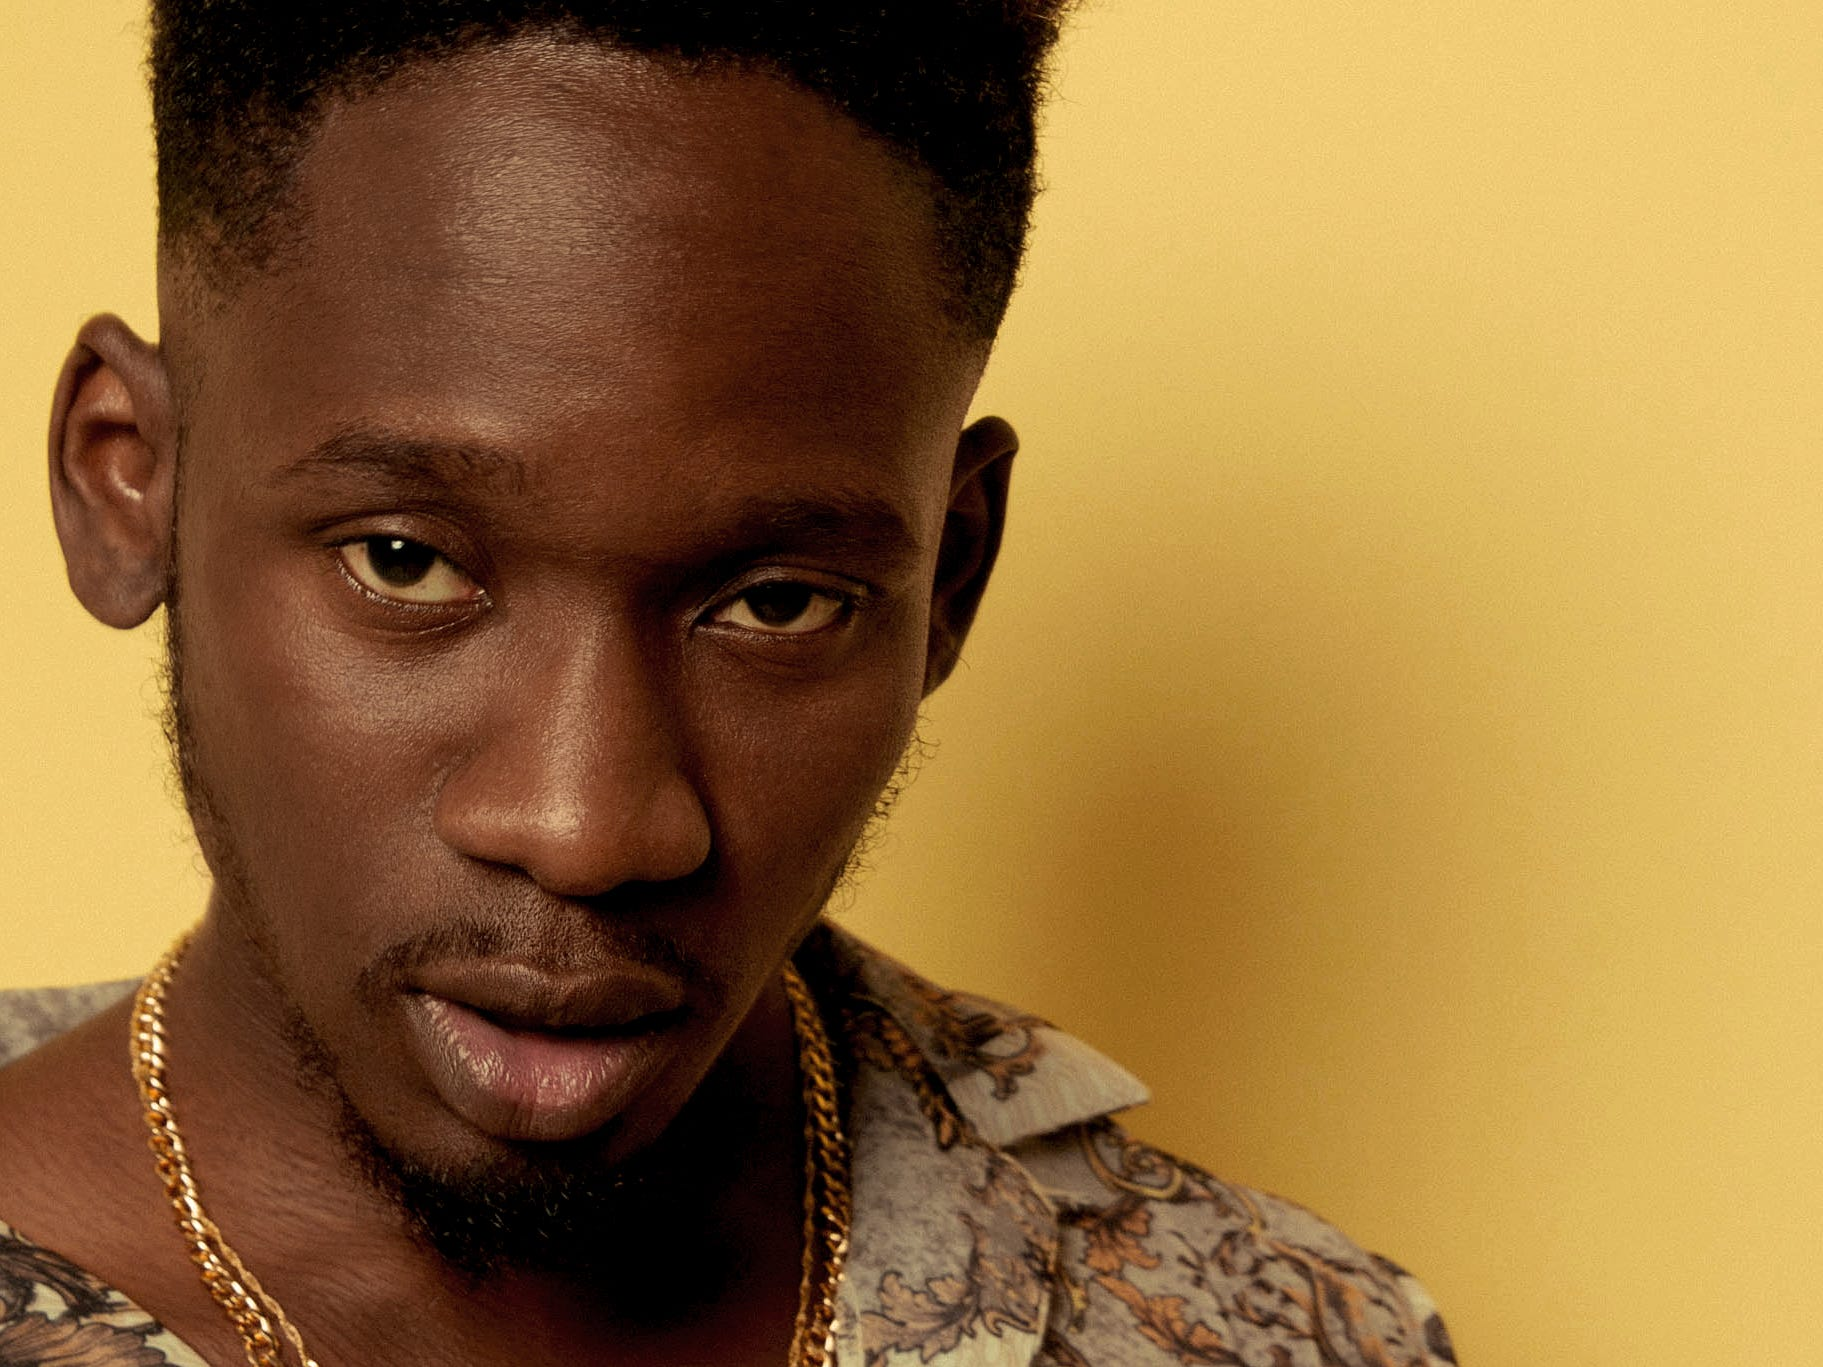 Nigerian pop artist Mr. Eazi, along with Michael Brun, will open for J. Balvin at Fiserv Forum Oct. 11.